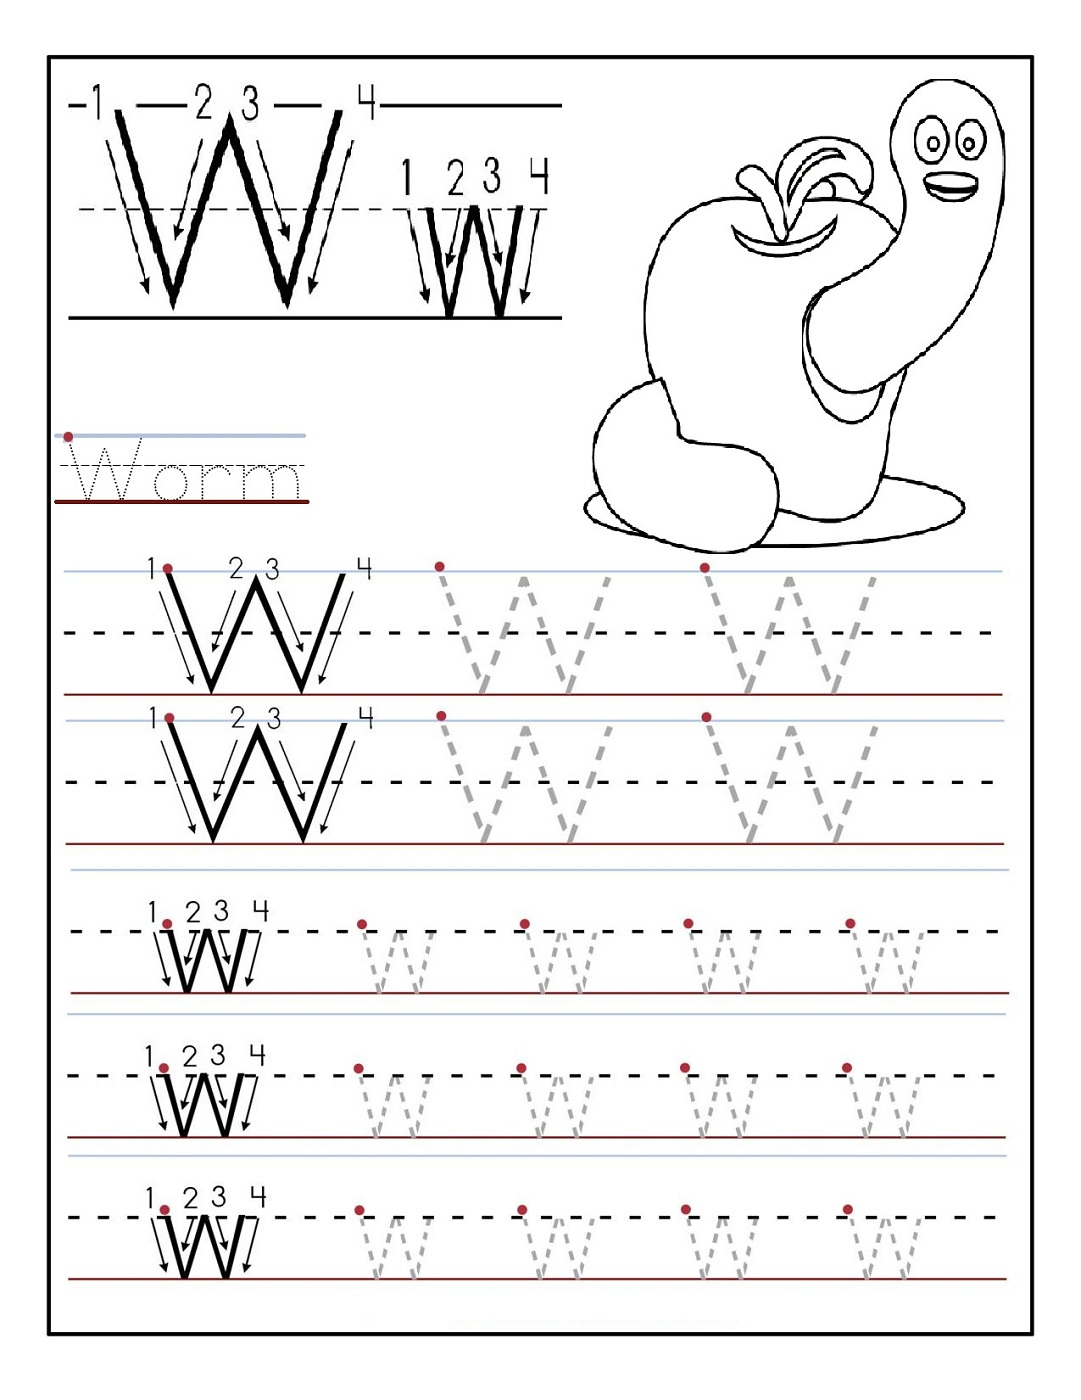 Worksheet Kindergarten Alphabet on Circle The Matching Letter U V W X Y